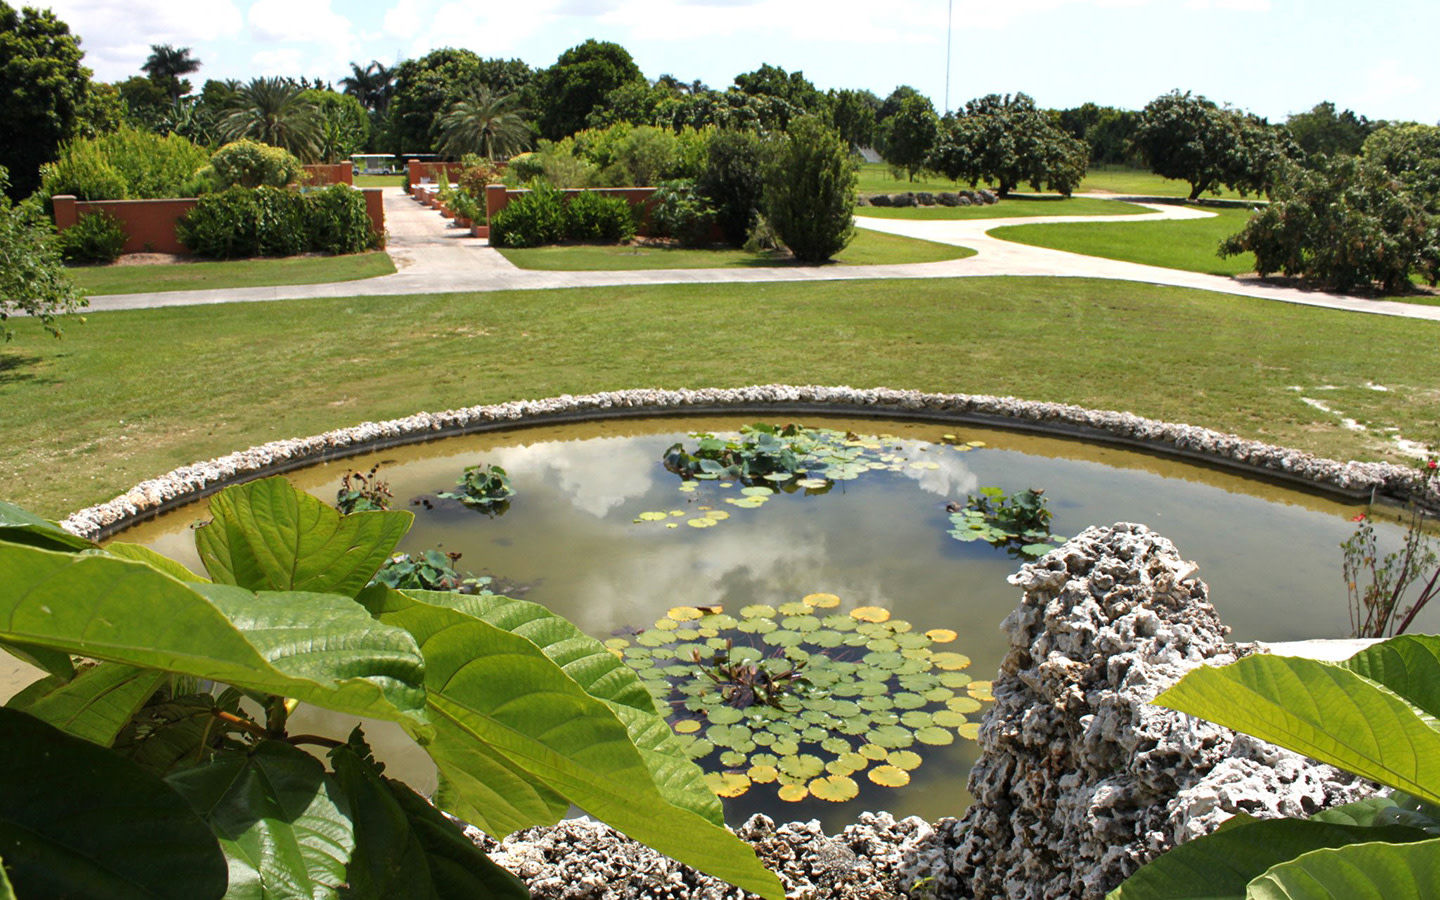 Fruit & Spice Park pond